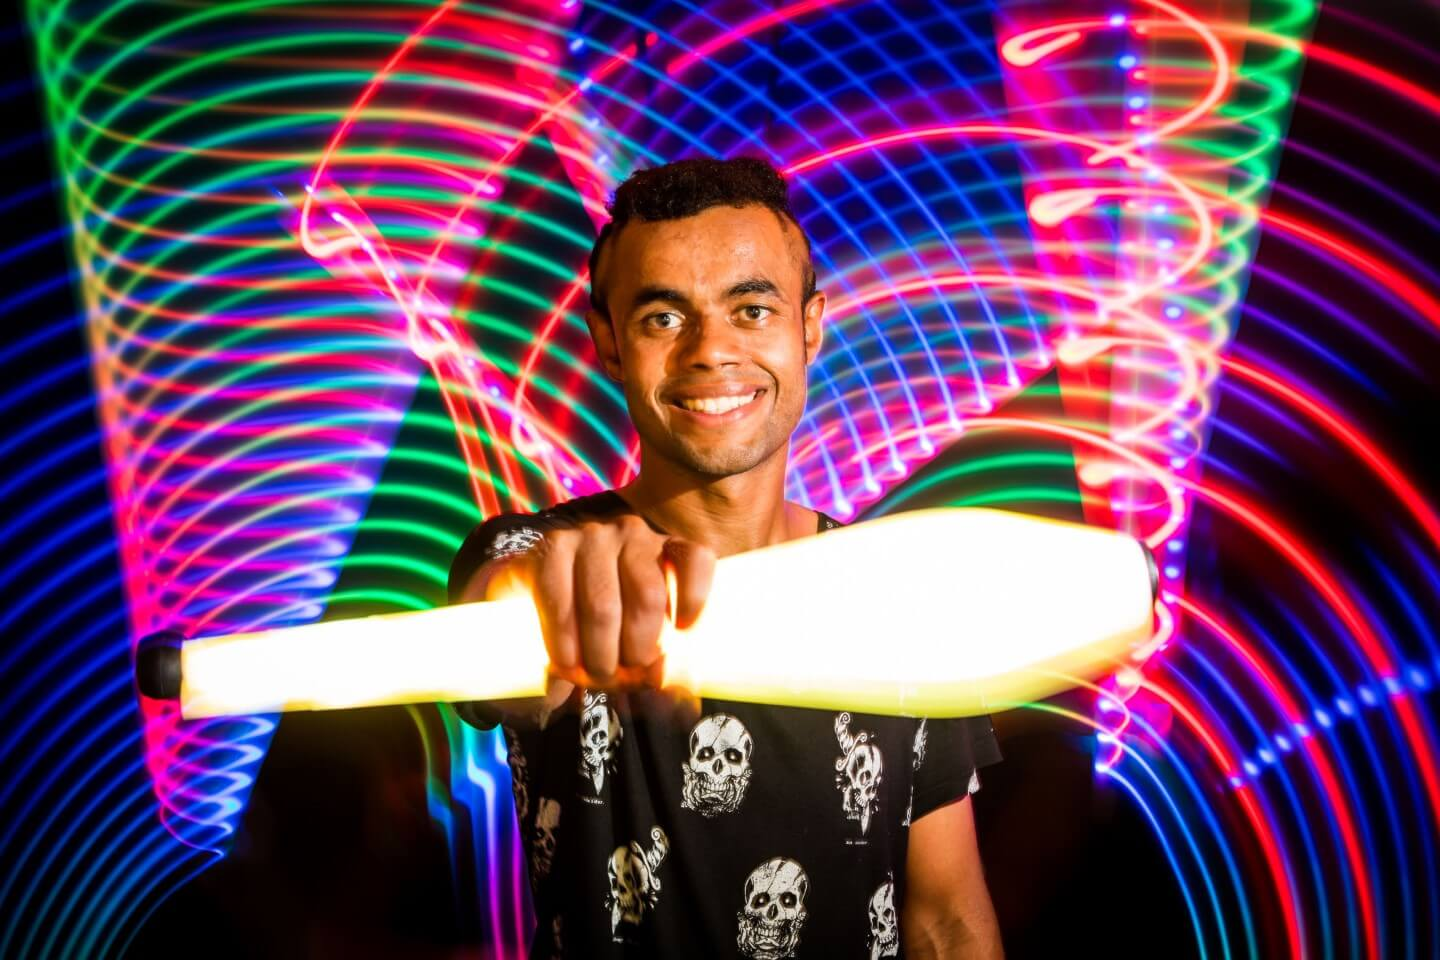 liglab-light-juggling-led-k8-malabares-paraguay-convention-